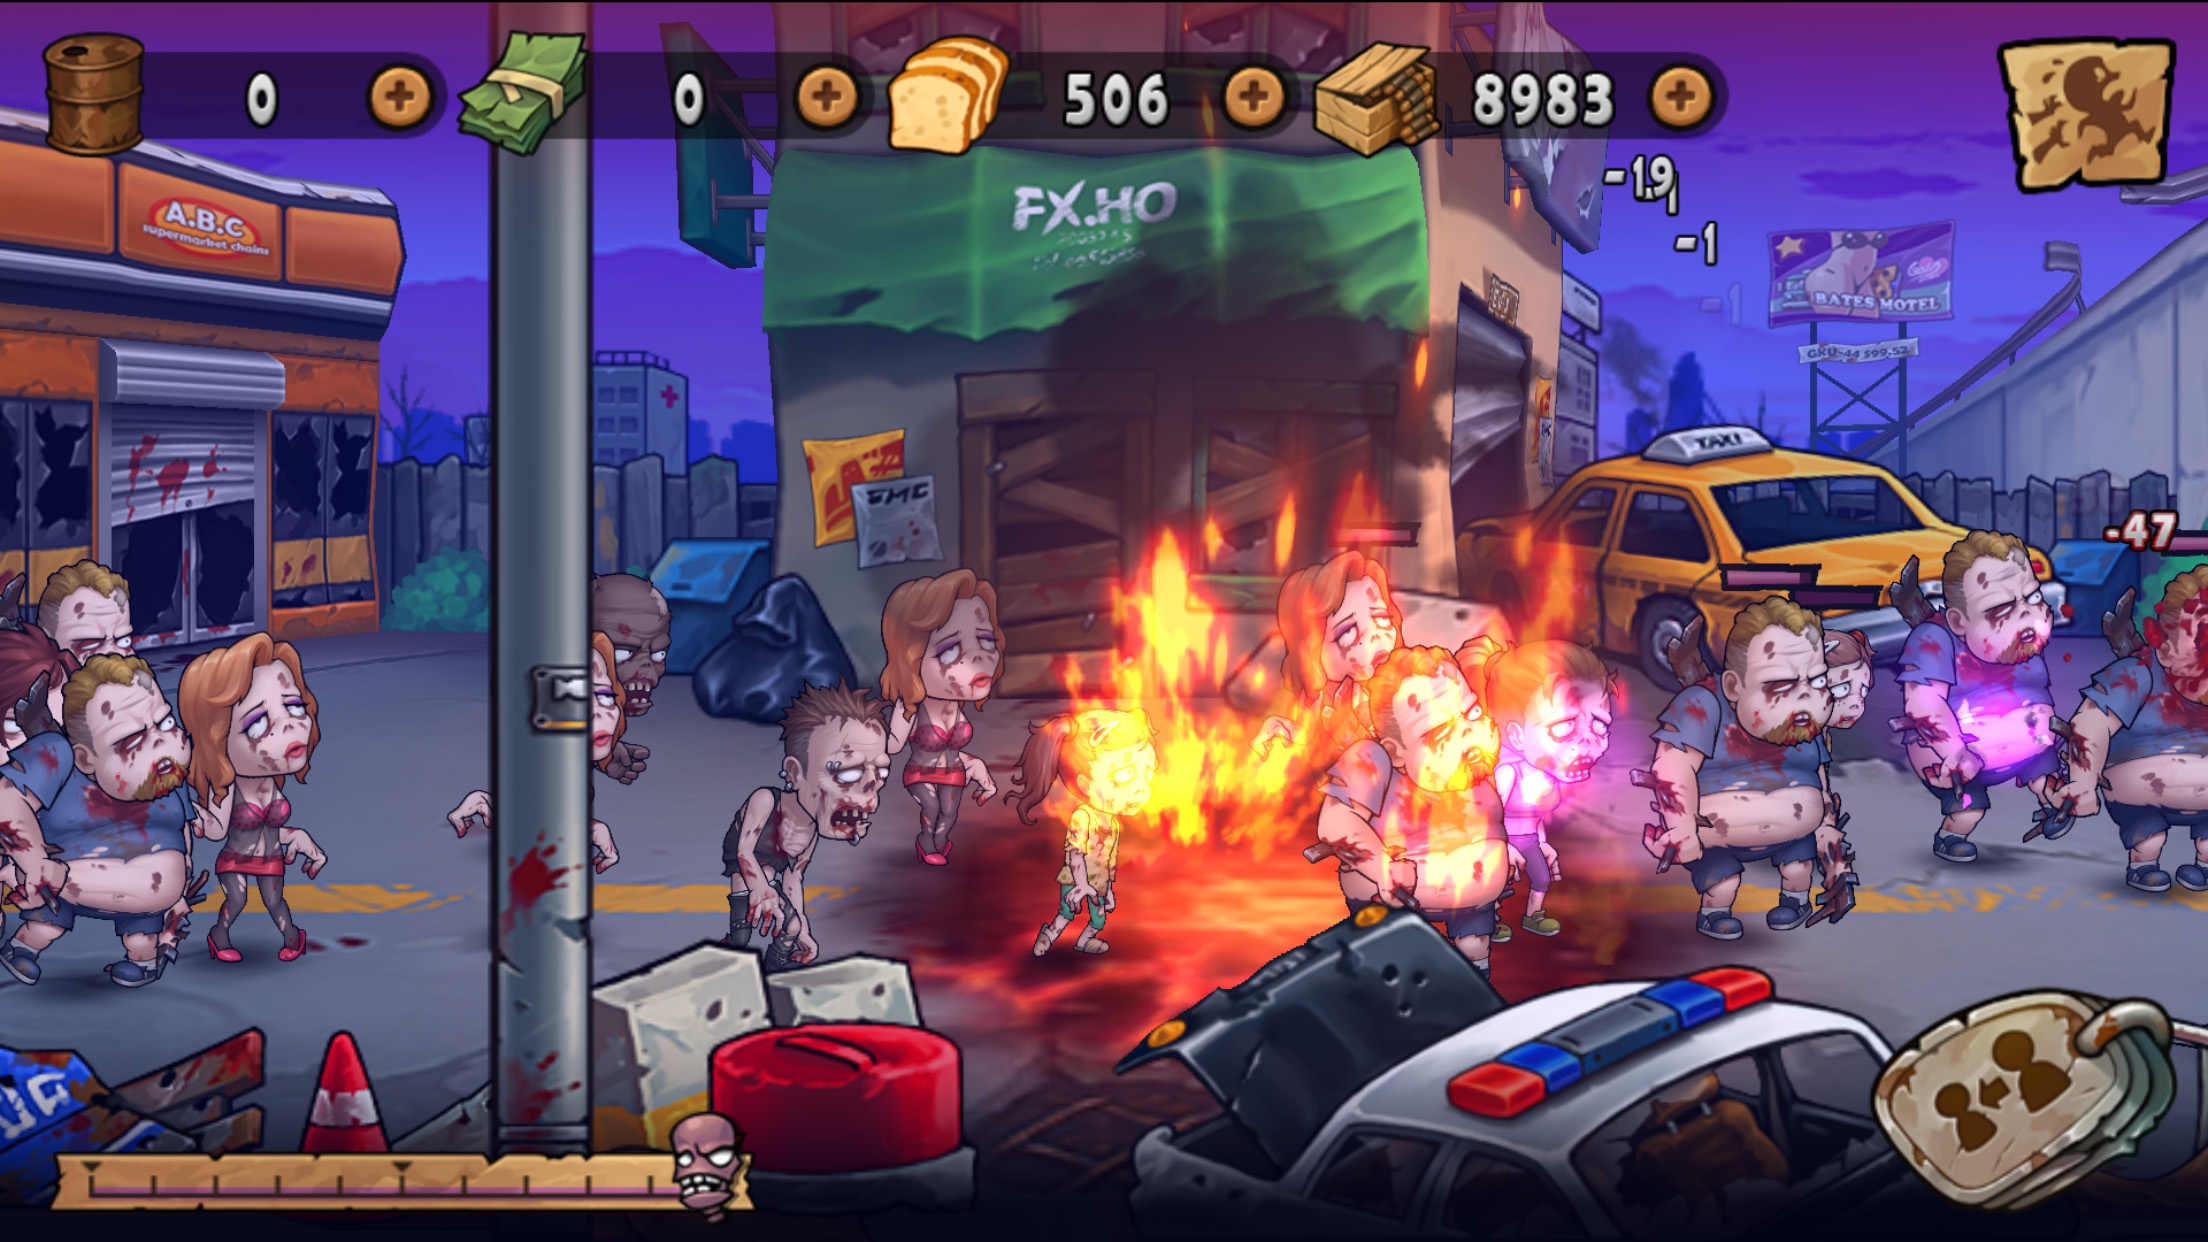 WAVES OF ZOMBIES 5